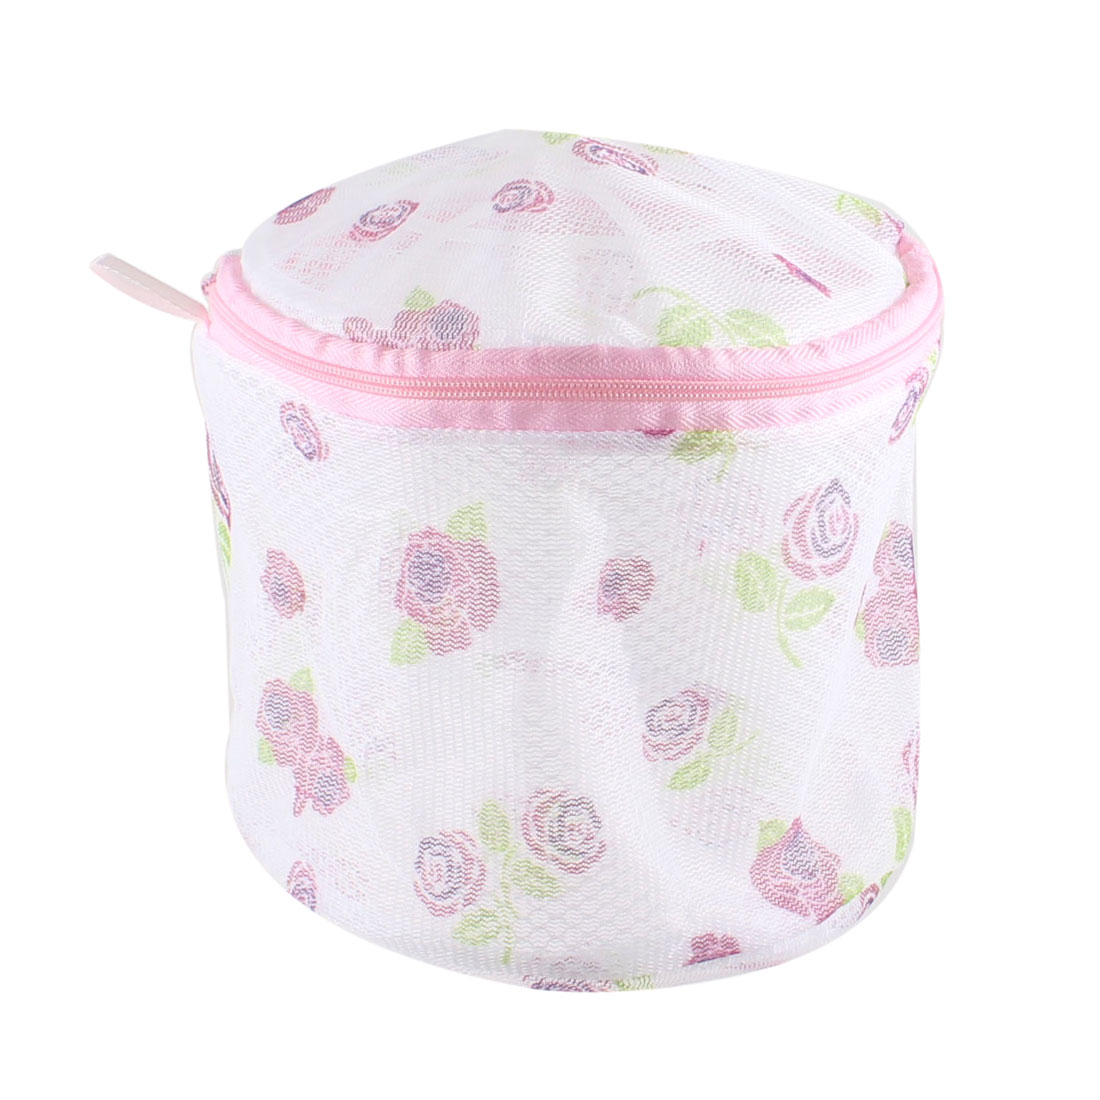 Fuchsia Purple Rose Pattern Underwear Bra Mesh Wash Laundry Basket Zipper Bag